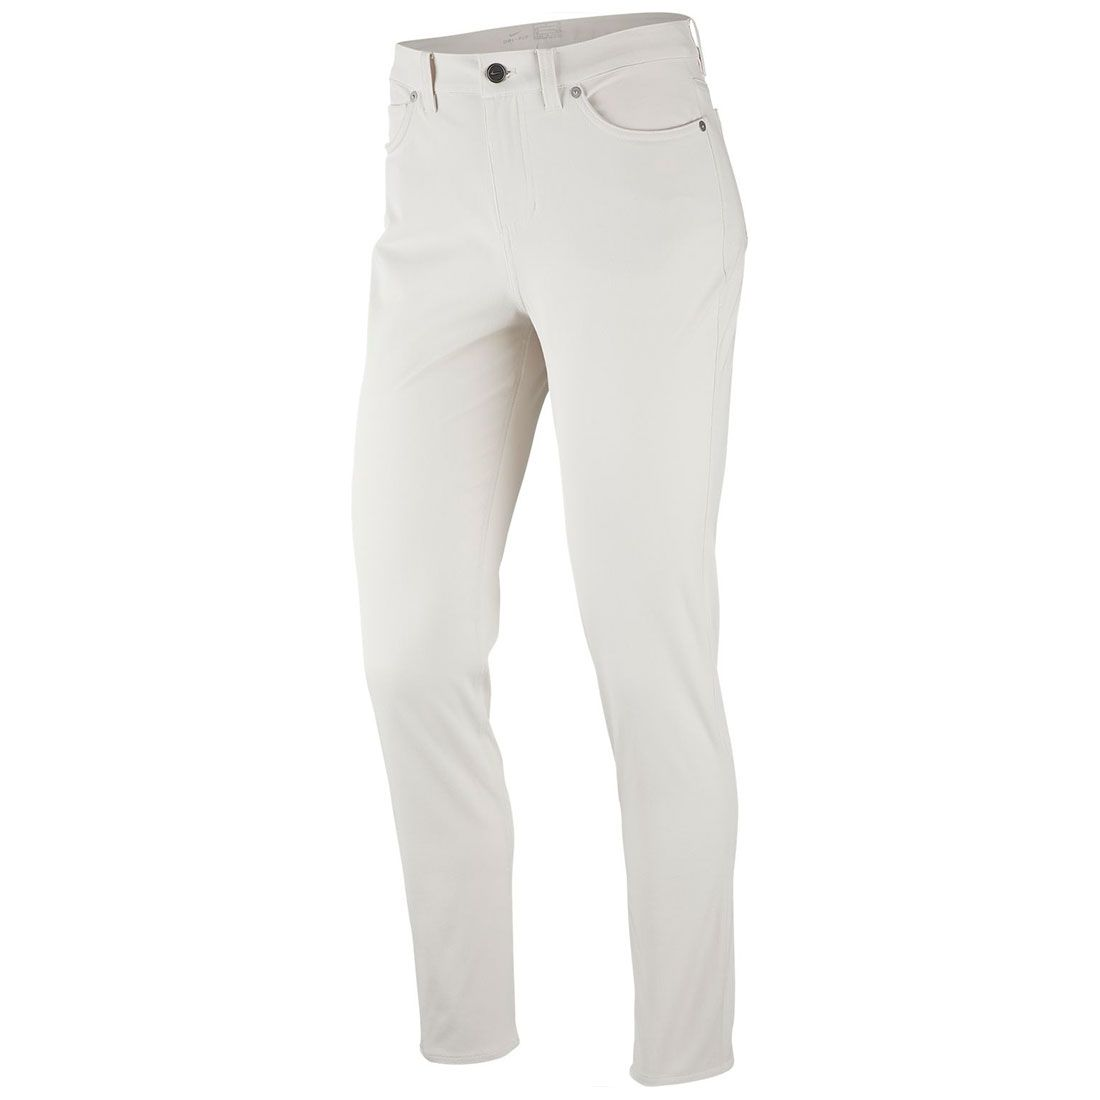 Combatiente Ligero paz  Buy Nike Women's Slim-Fit Fairway Jean Pants | Golf Discount